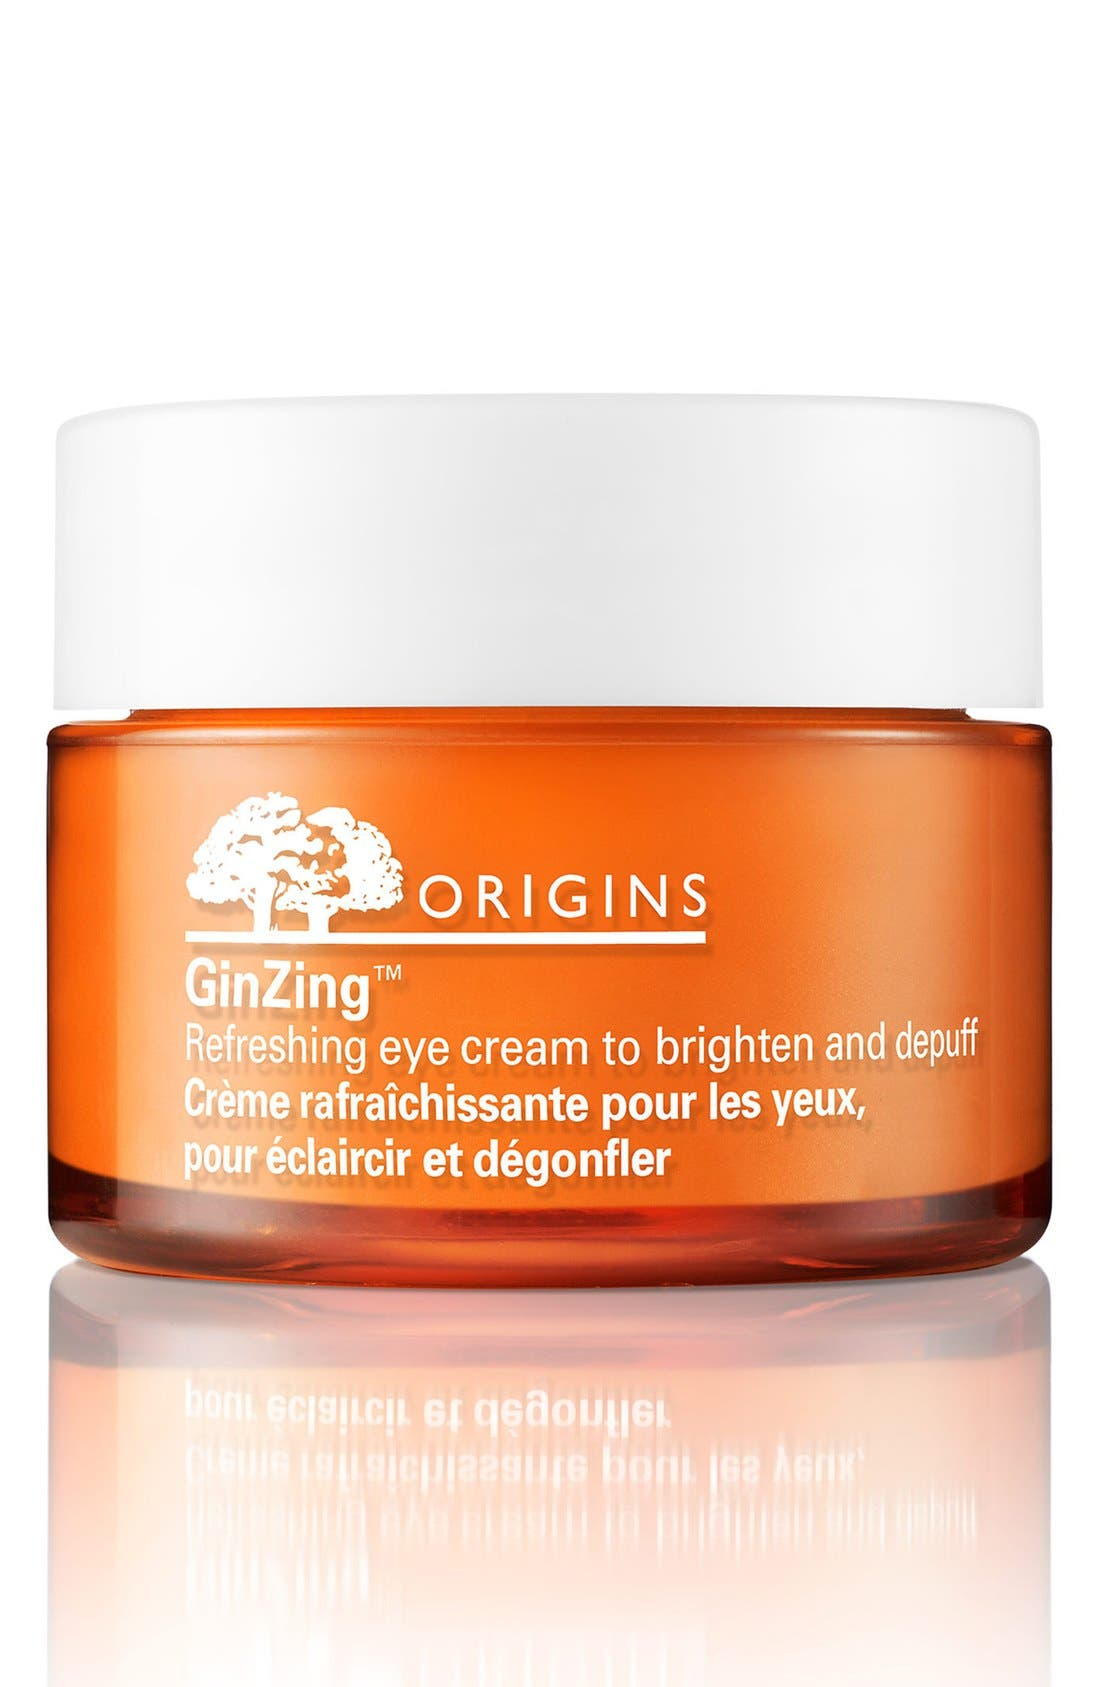 Origins GinZing™ Refreshing Eye Cream to Brighten & Depuff